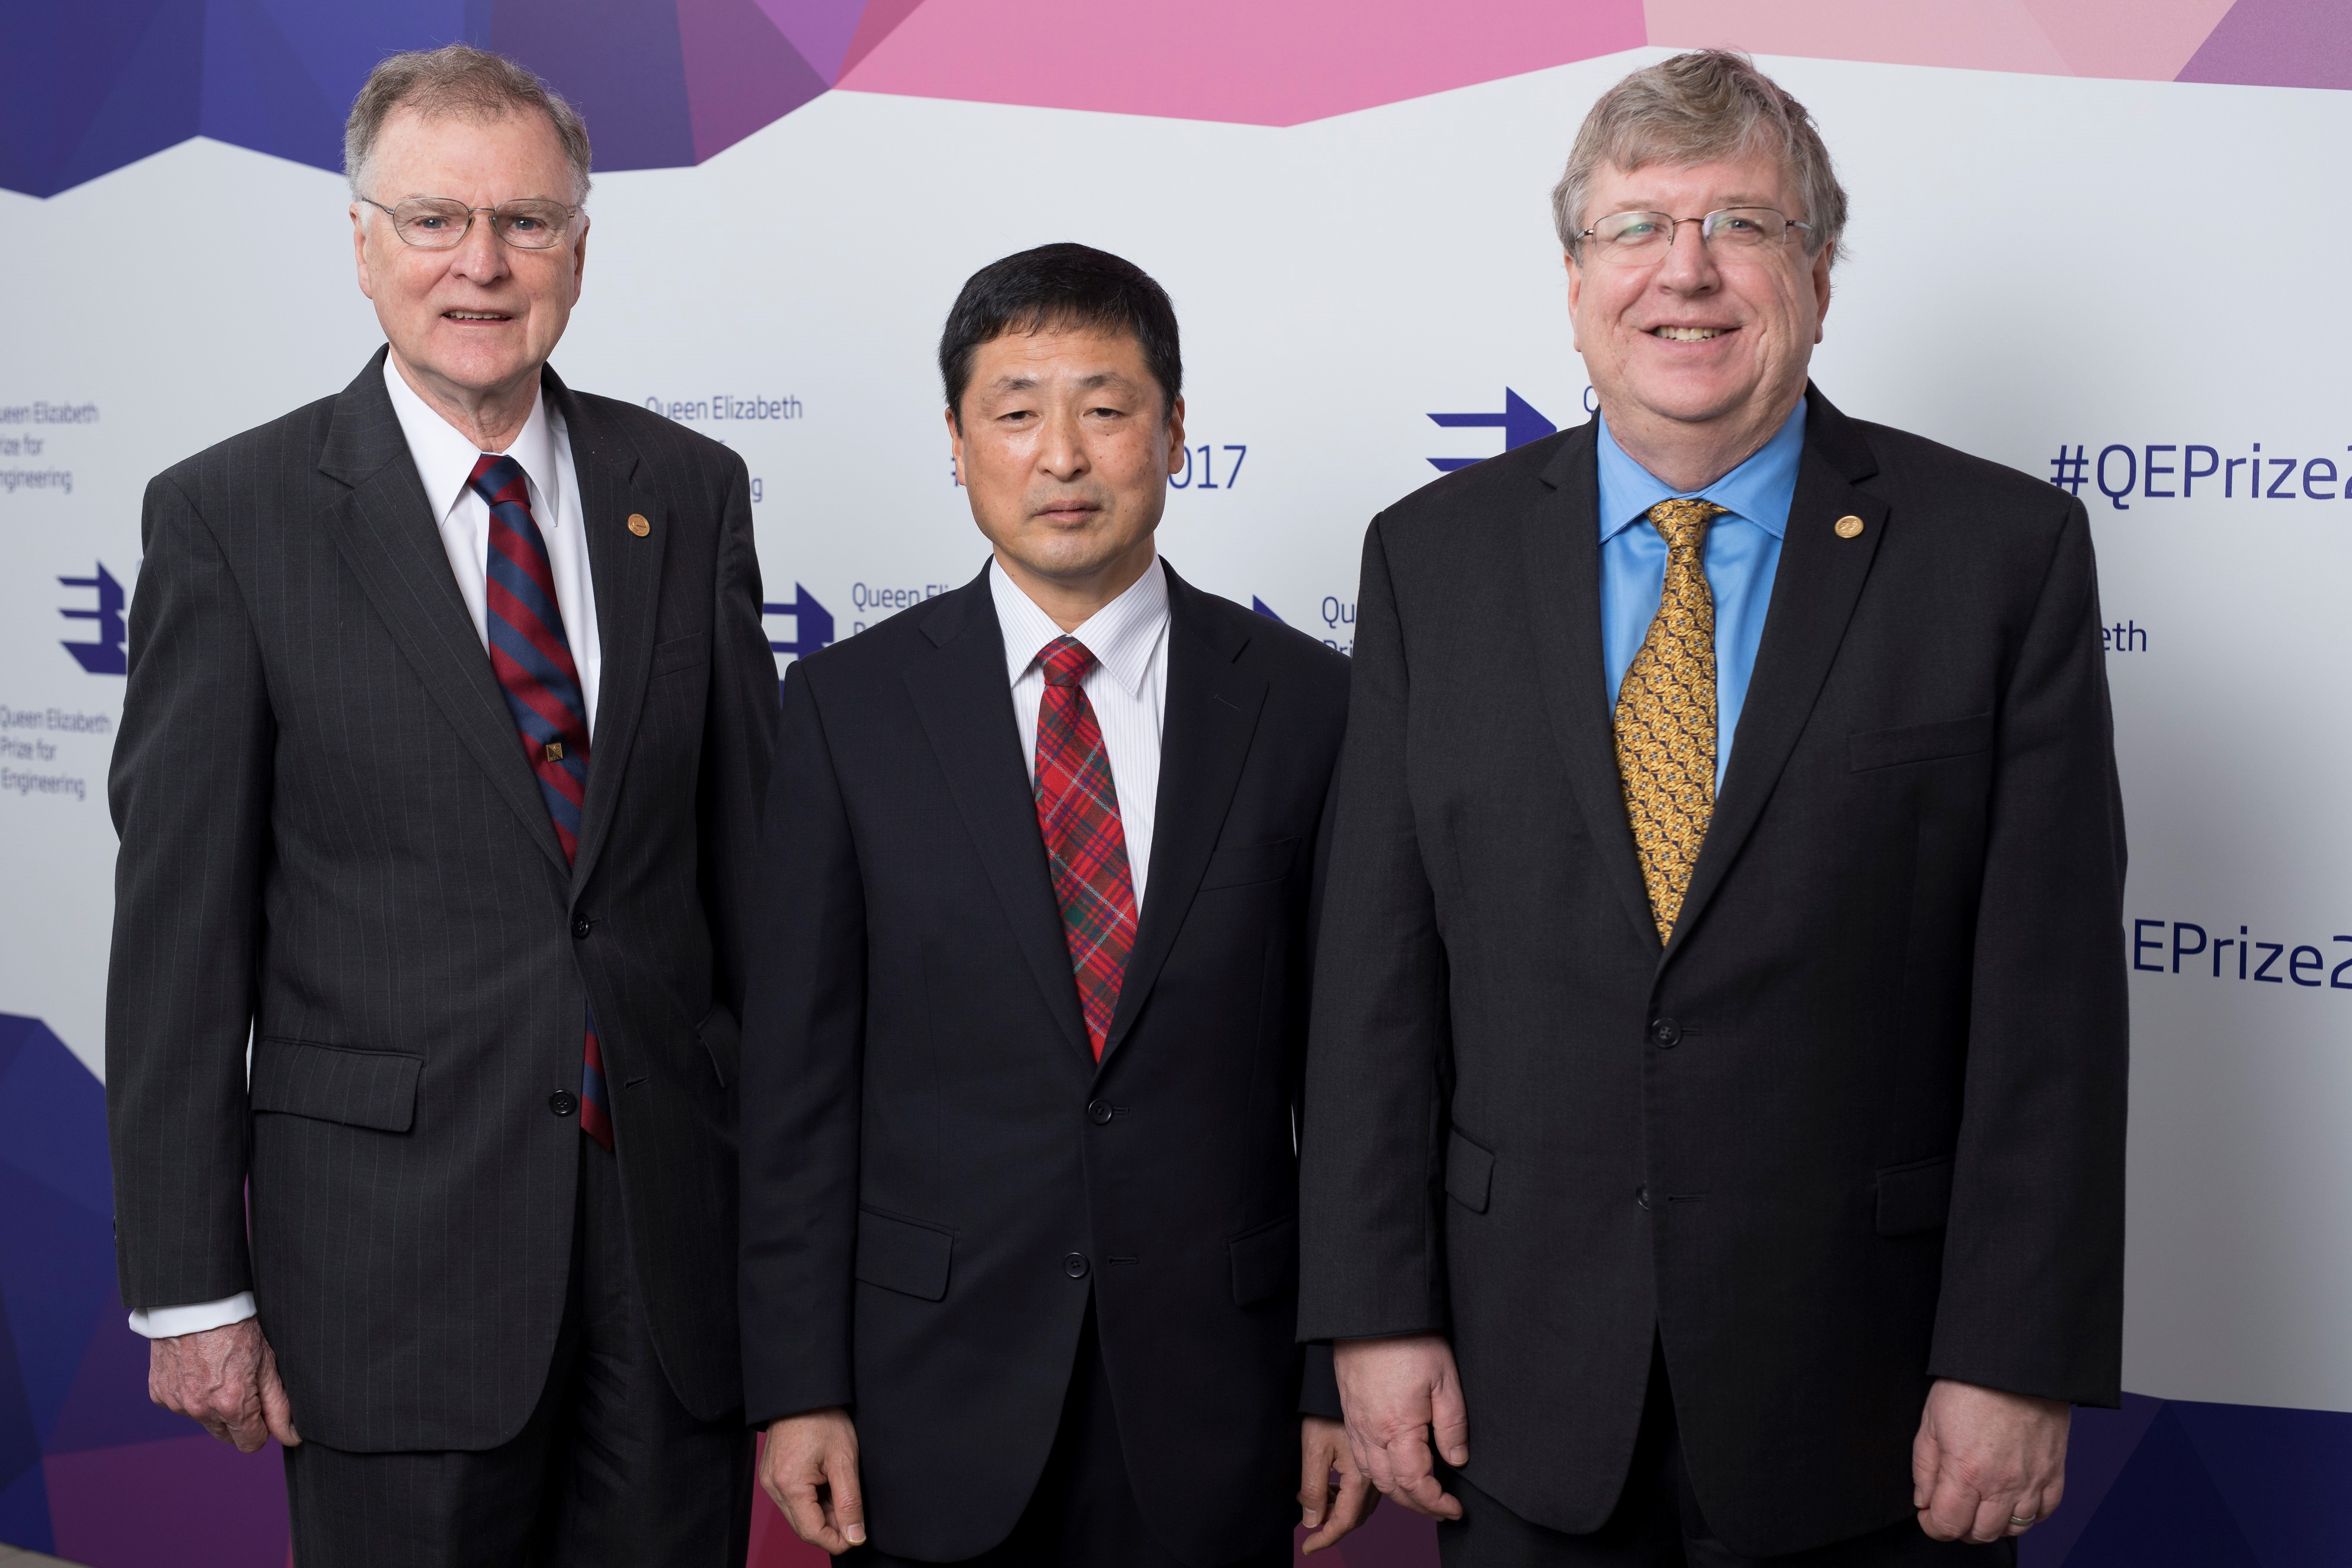 Winners of the Queen Elizabeth Prize for Engineering, announced in London on Feb. 1 2017. L-R: Michael Tompsett (UK) Eric Fossum (USA) and Nobukazu Teranishi (Japan). Along with George Smith (USA) they will share the £1million prize for combined contribution to digital imaging. Their inventions made the selfie possible